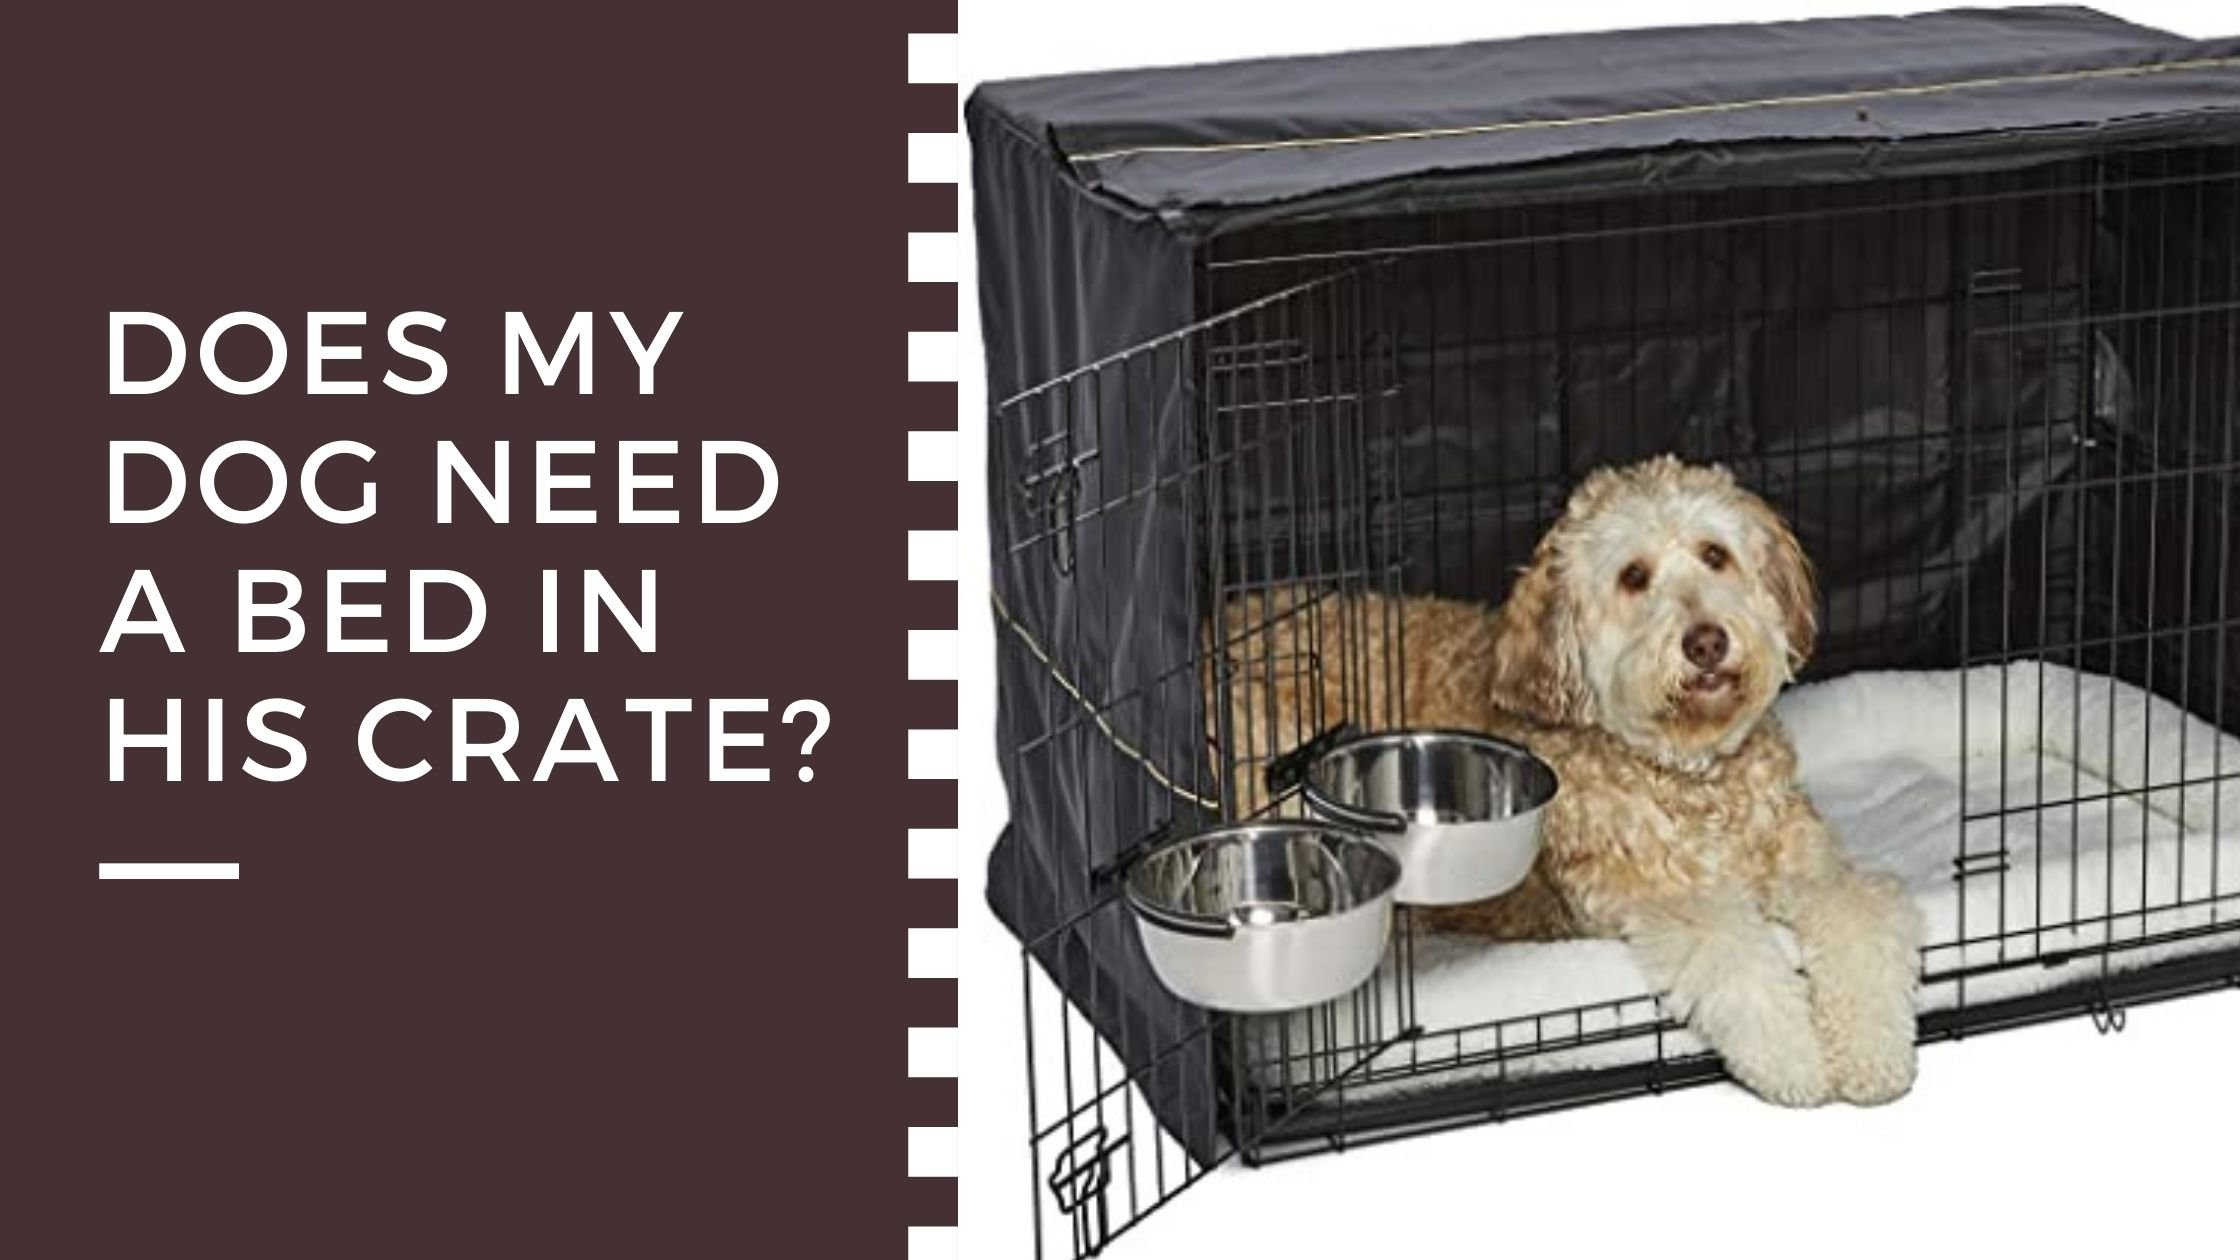 Dog bed in crate